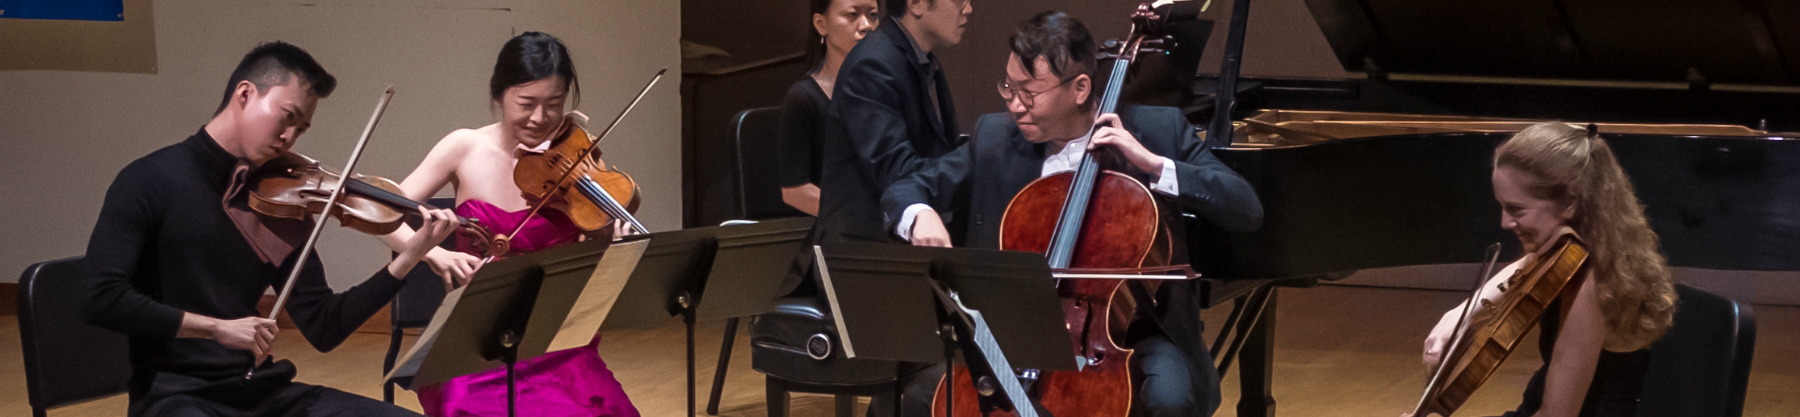 An orchestra with violins and a grand piano performs on stage.